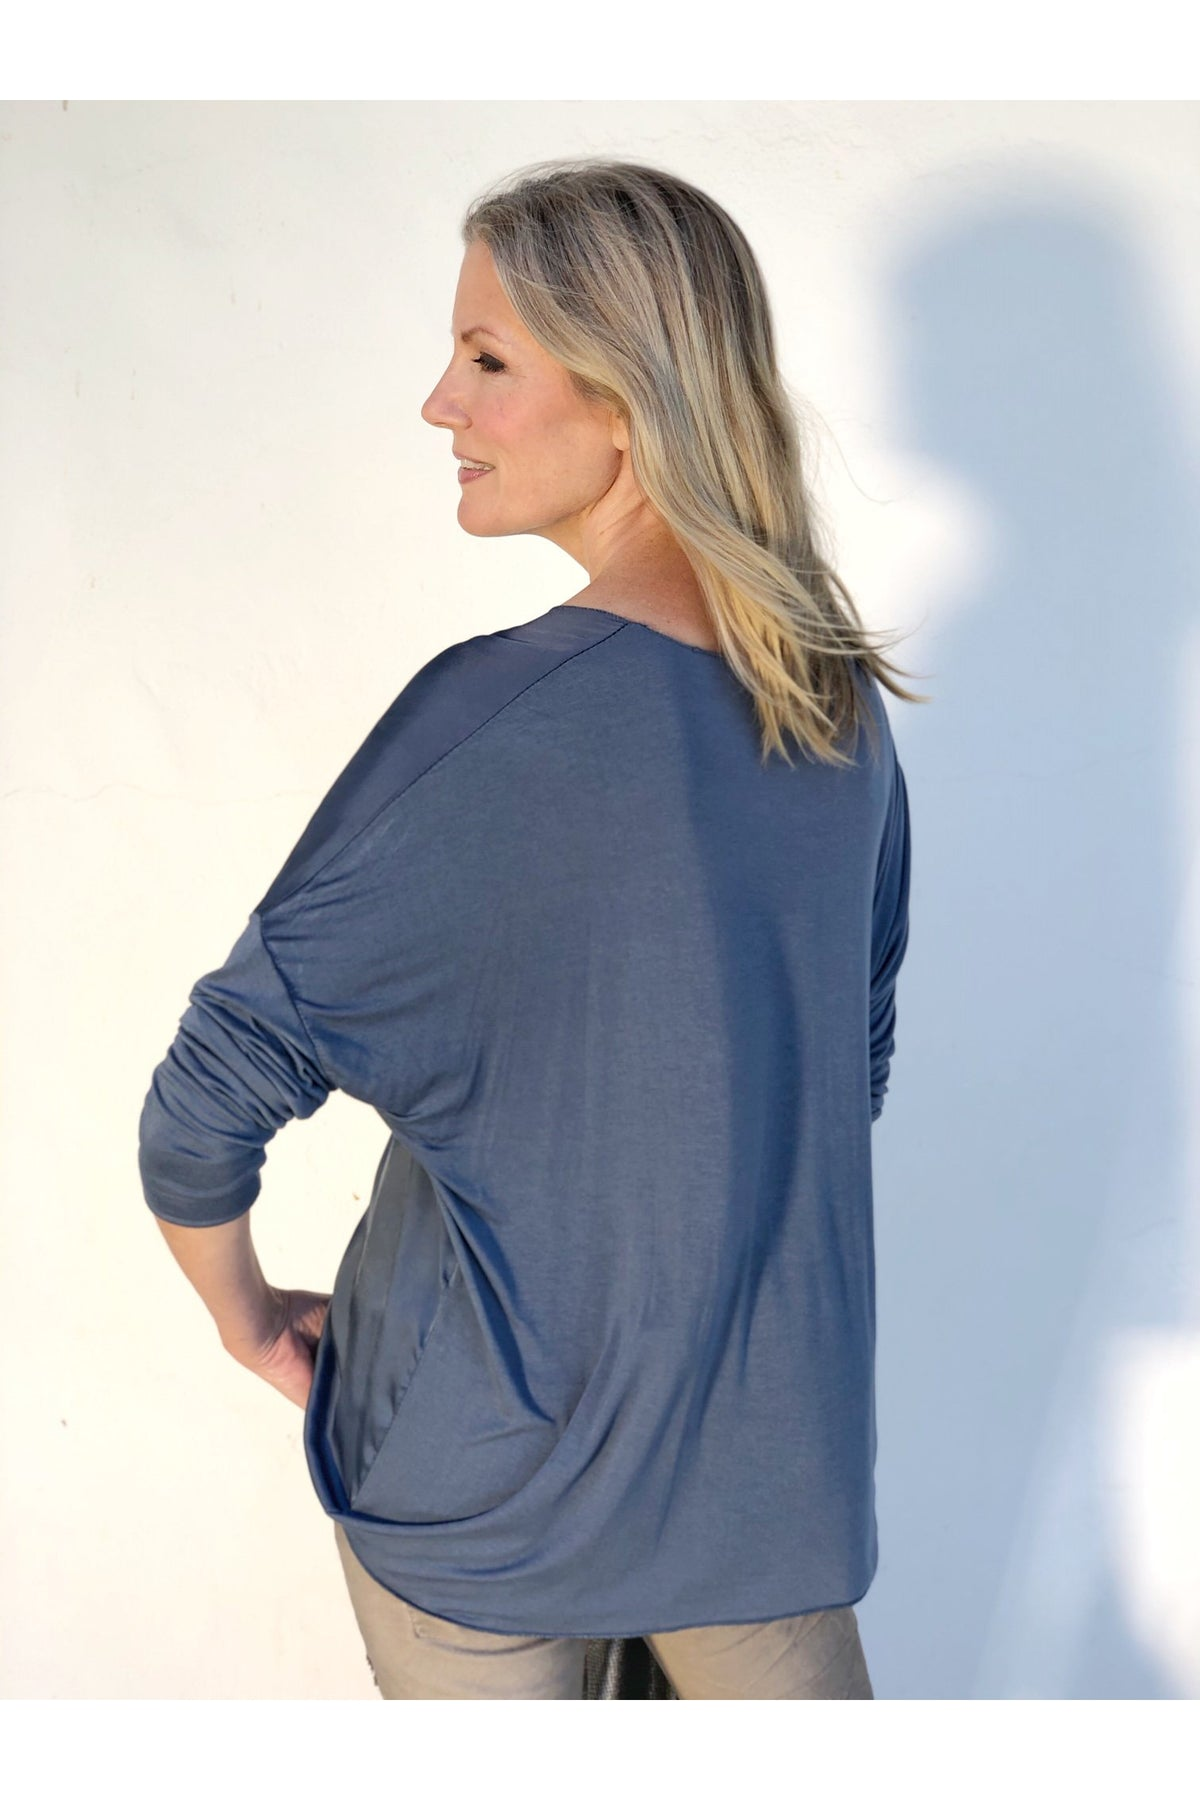 INDIGO MEADOW TOP